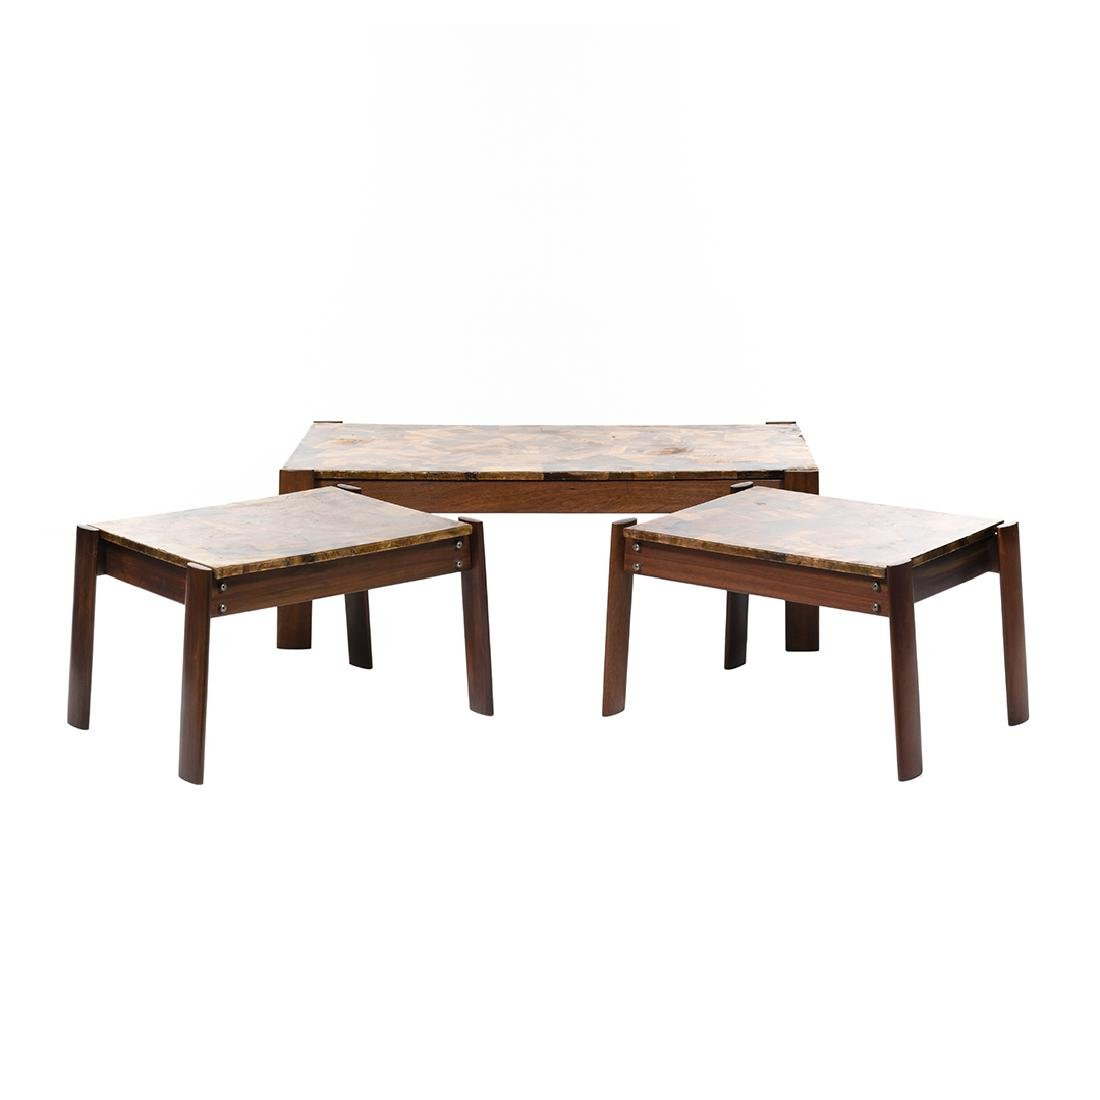 Percival Lafer Coffee Table and End Tables (3)